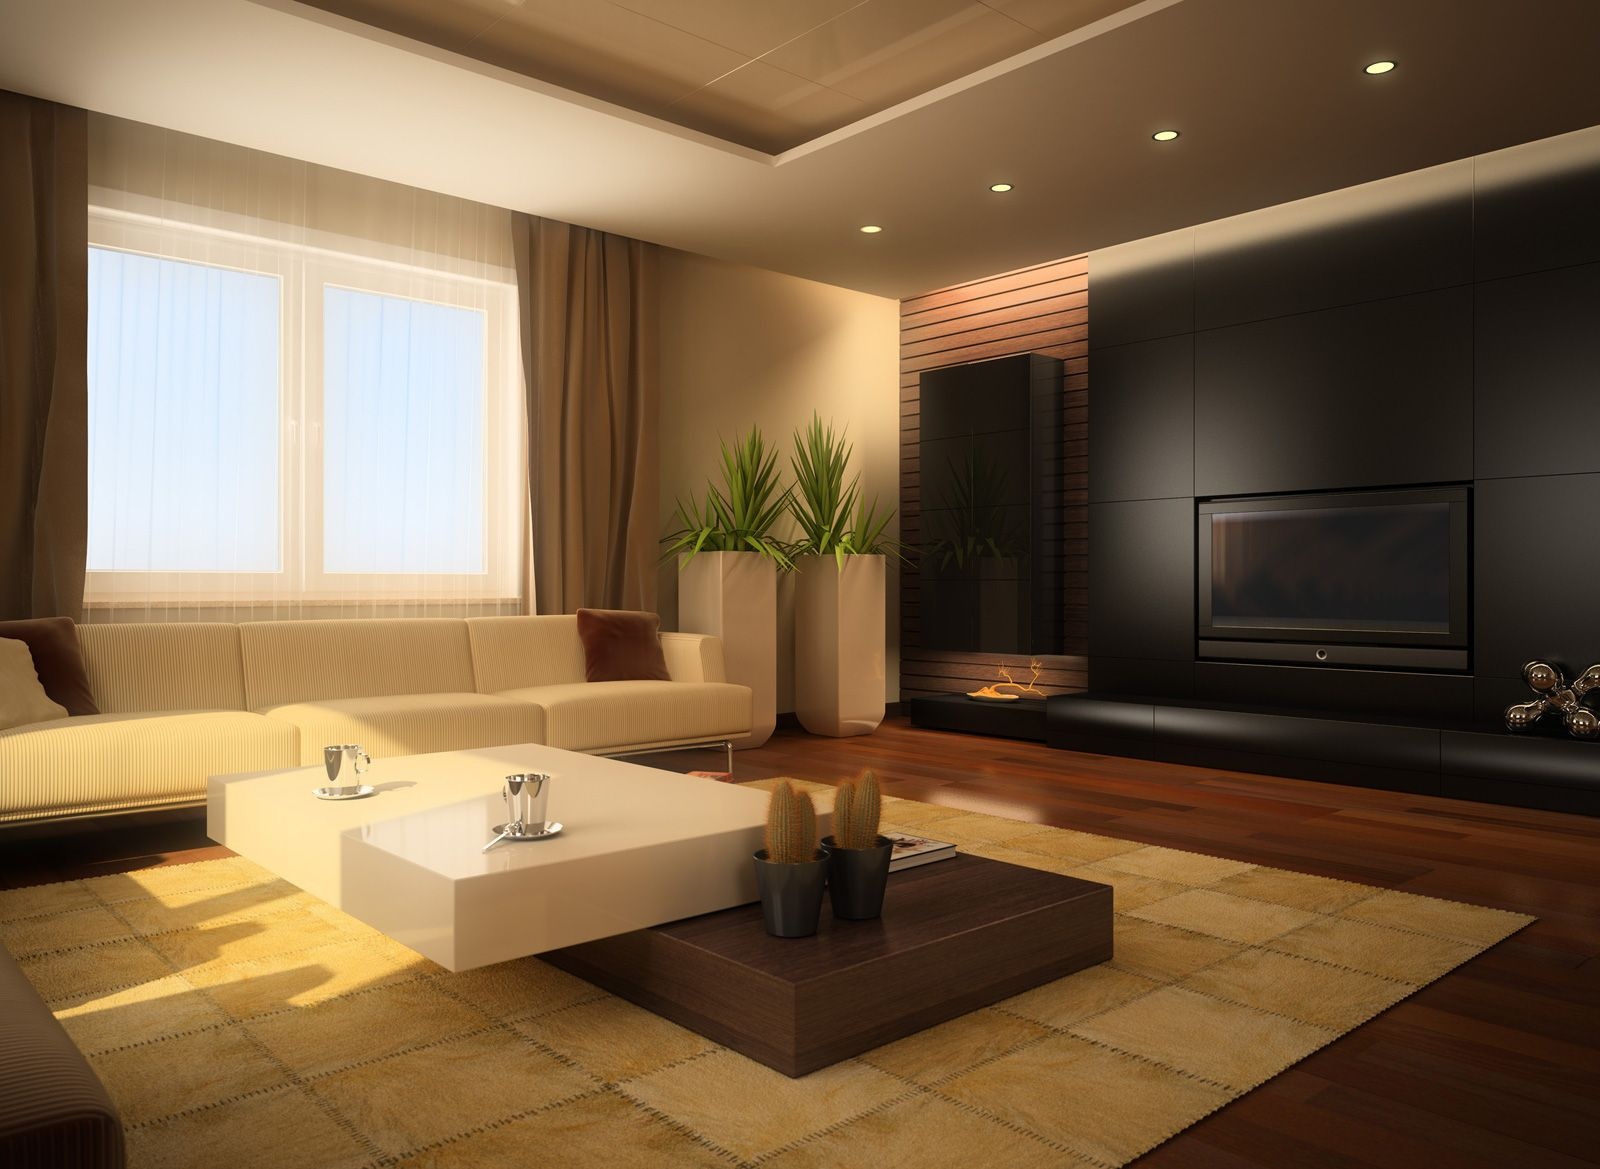 Modern minimalist interior designs for living rooms for Minimalist room design ideas